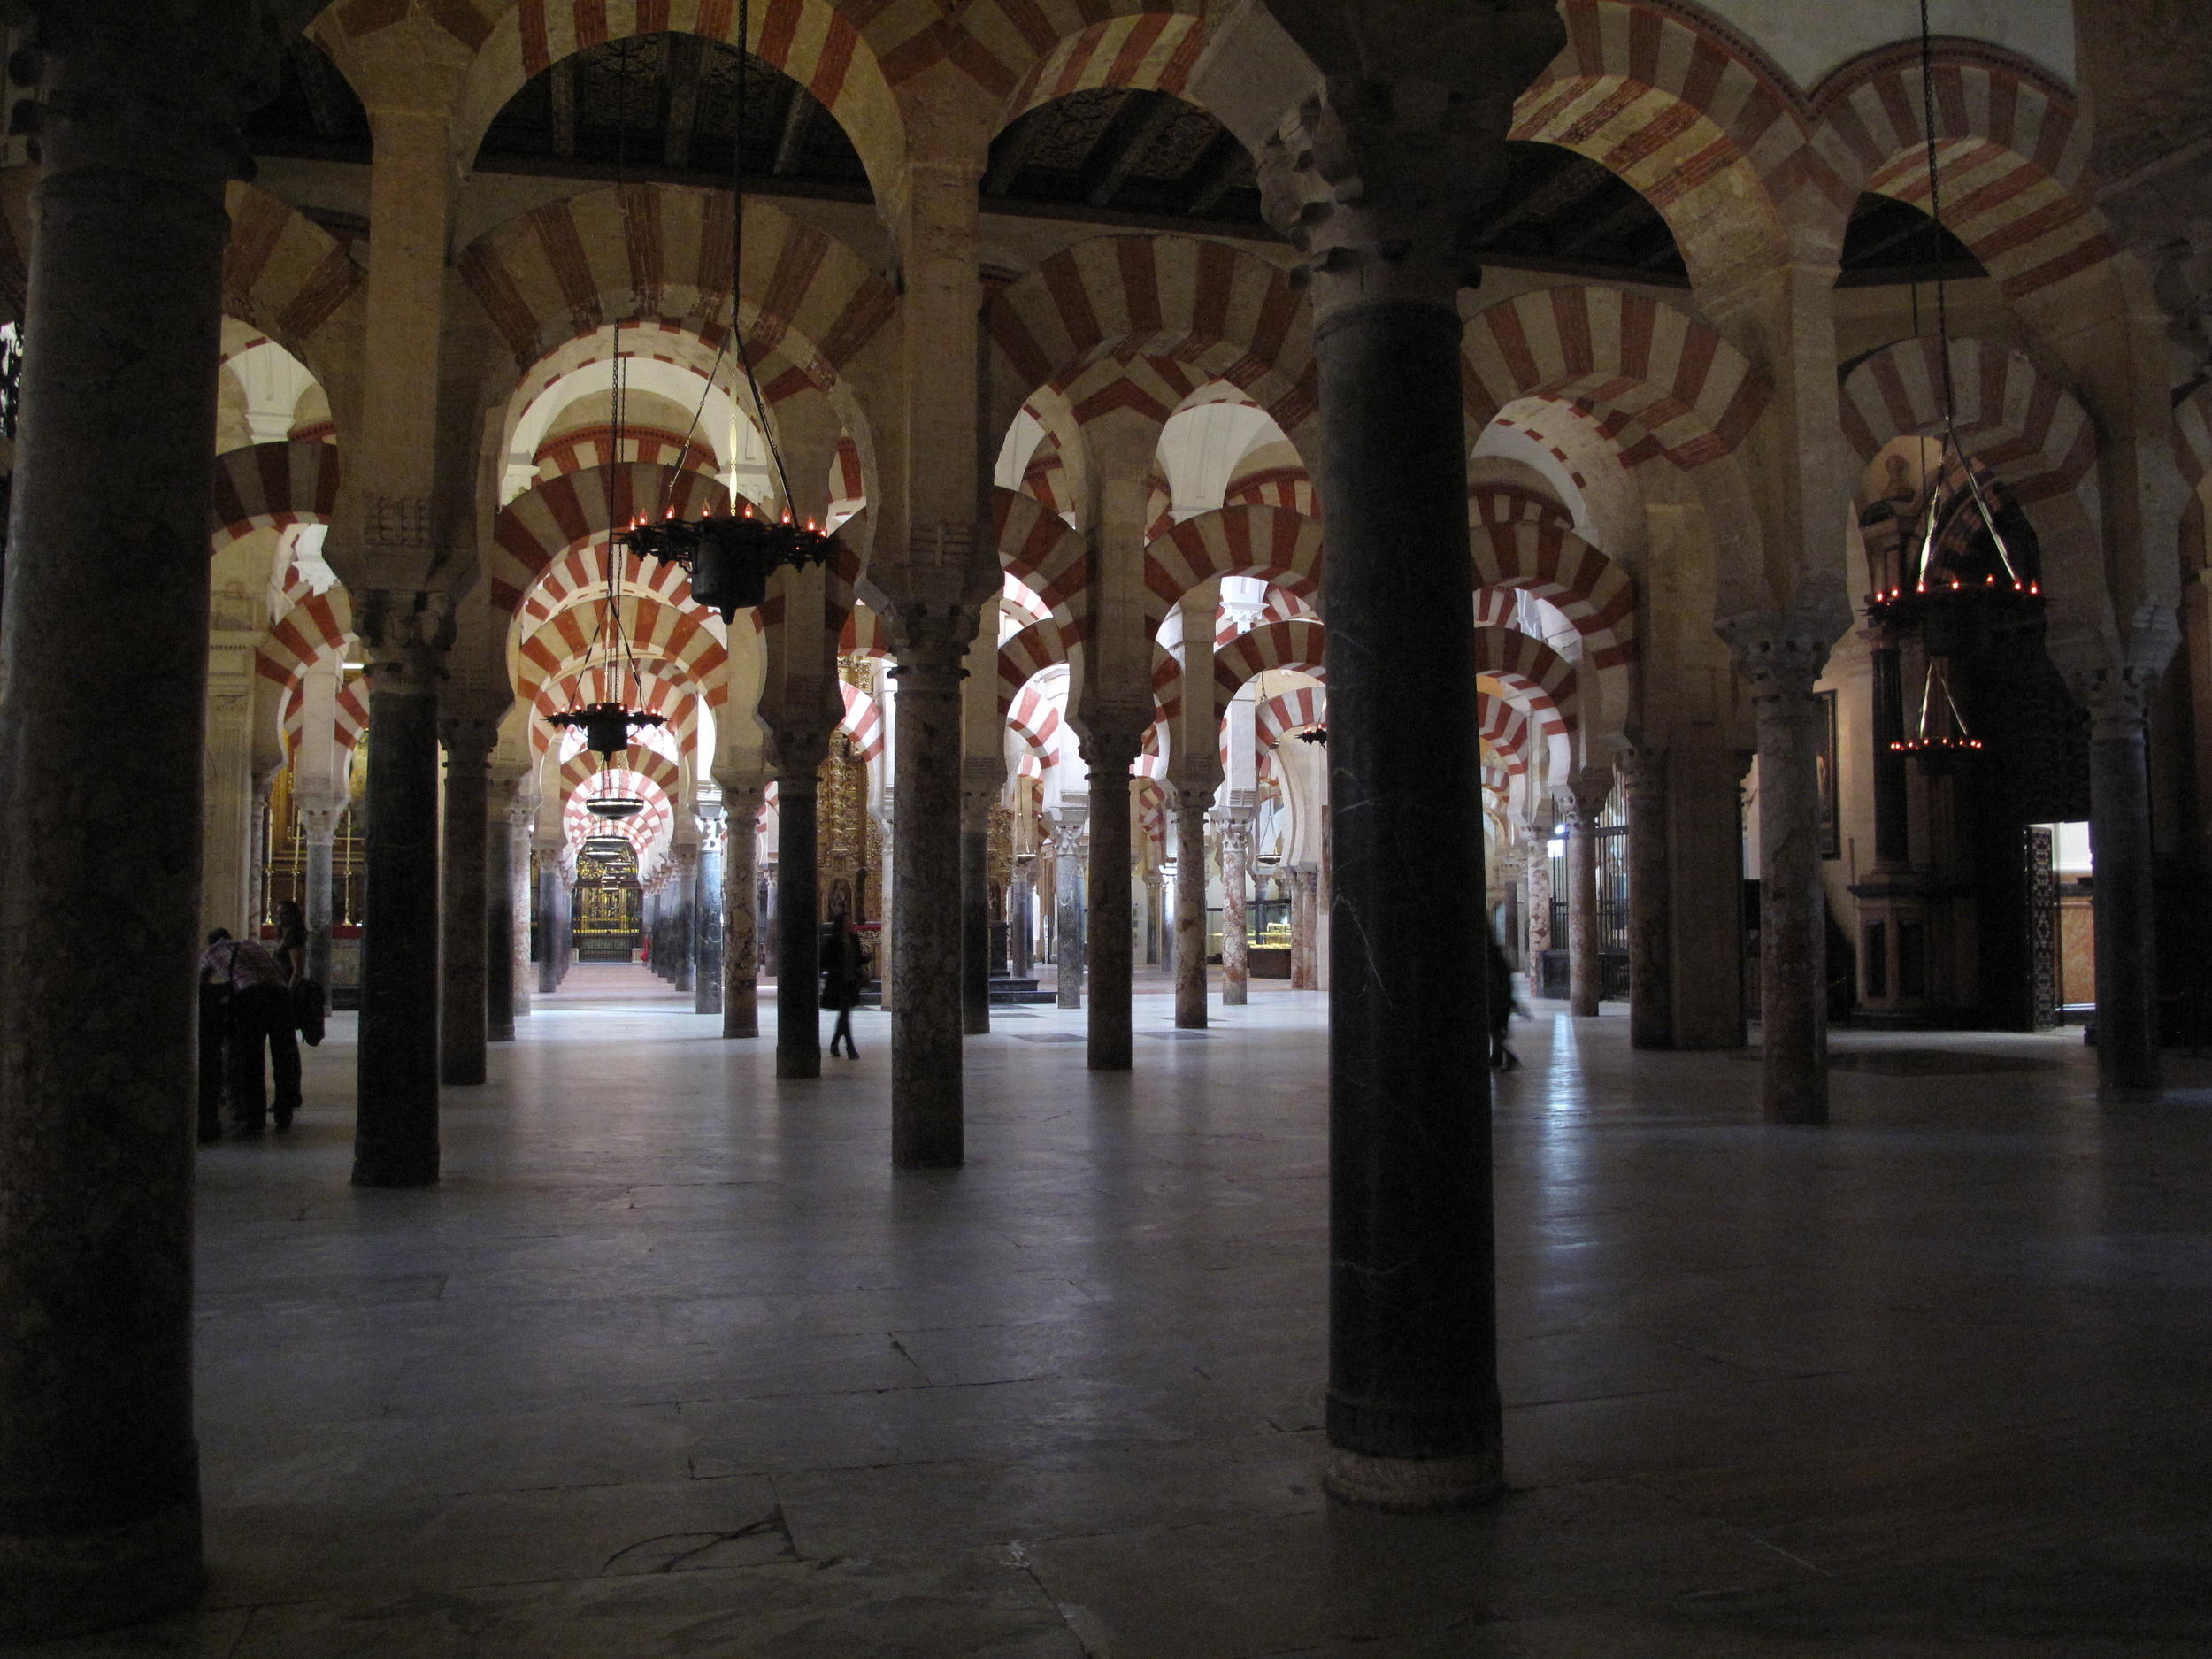 Mosque of Córdoba in Spain - painted pillars as far as the eye can see